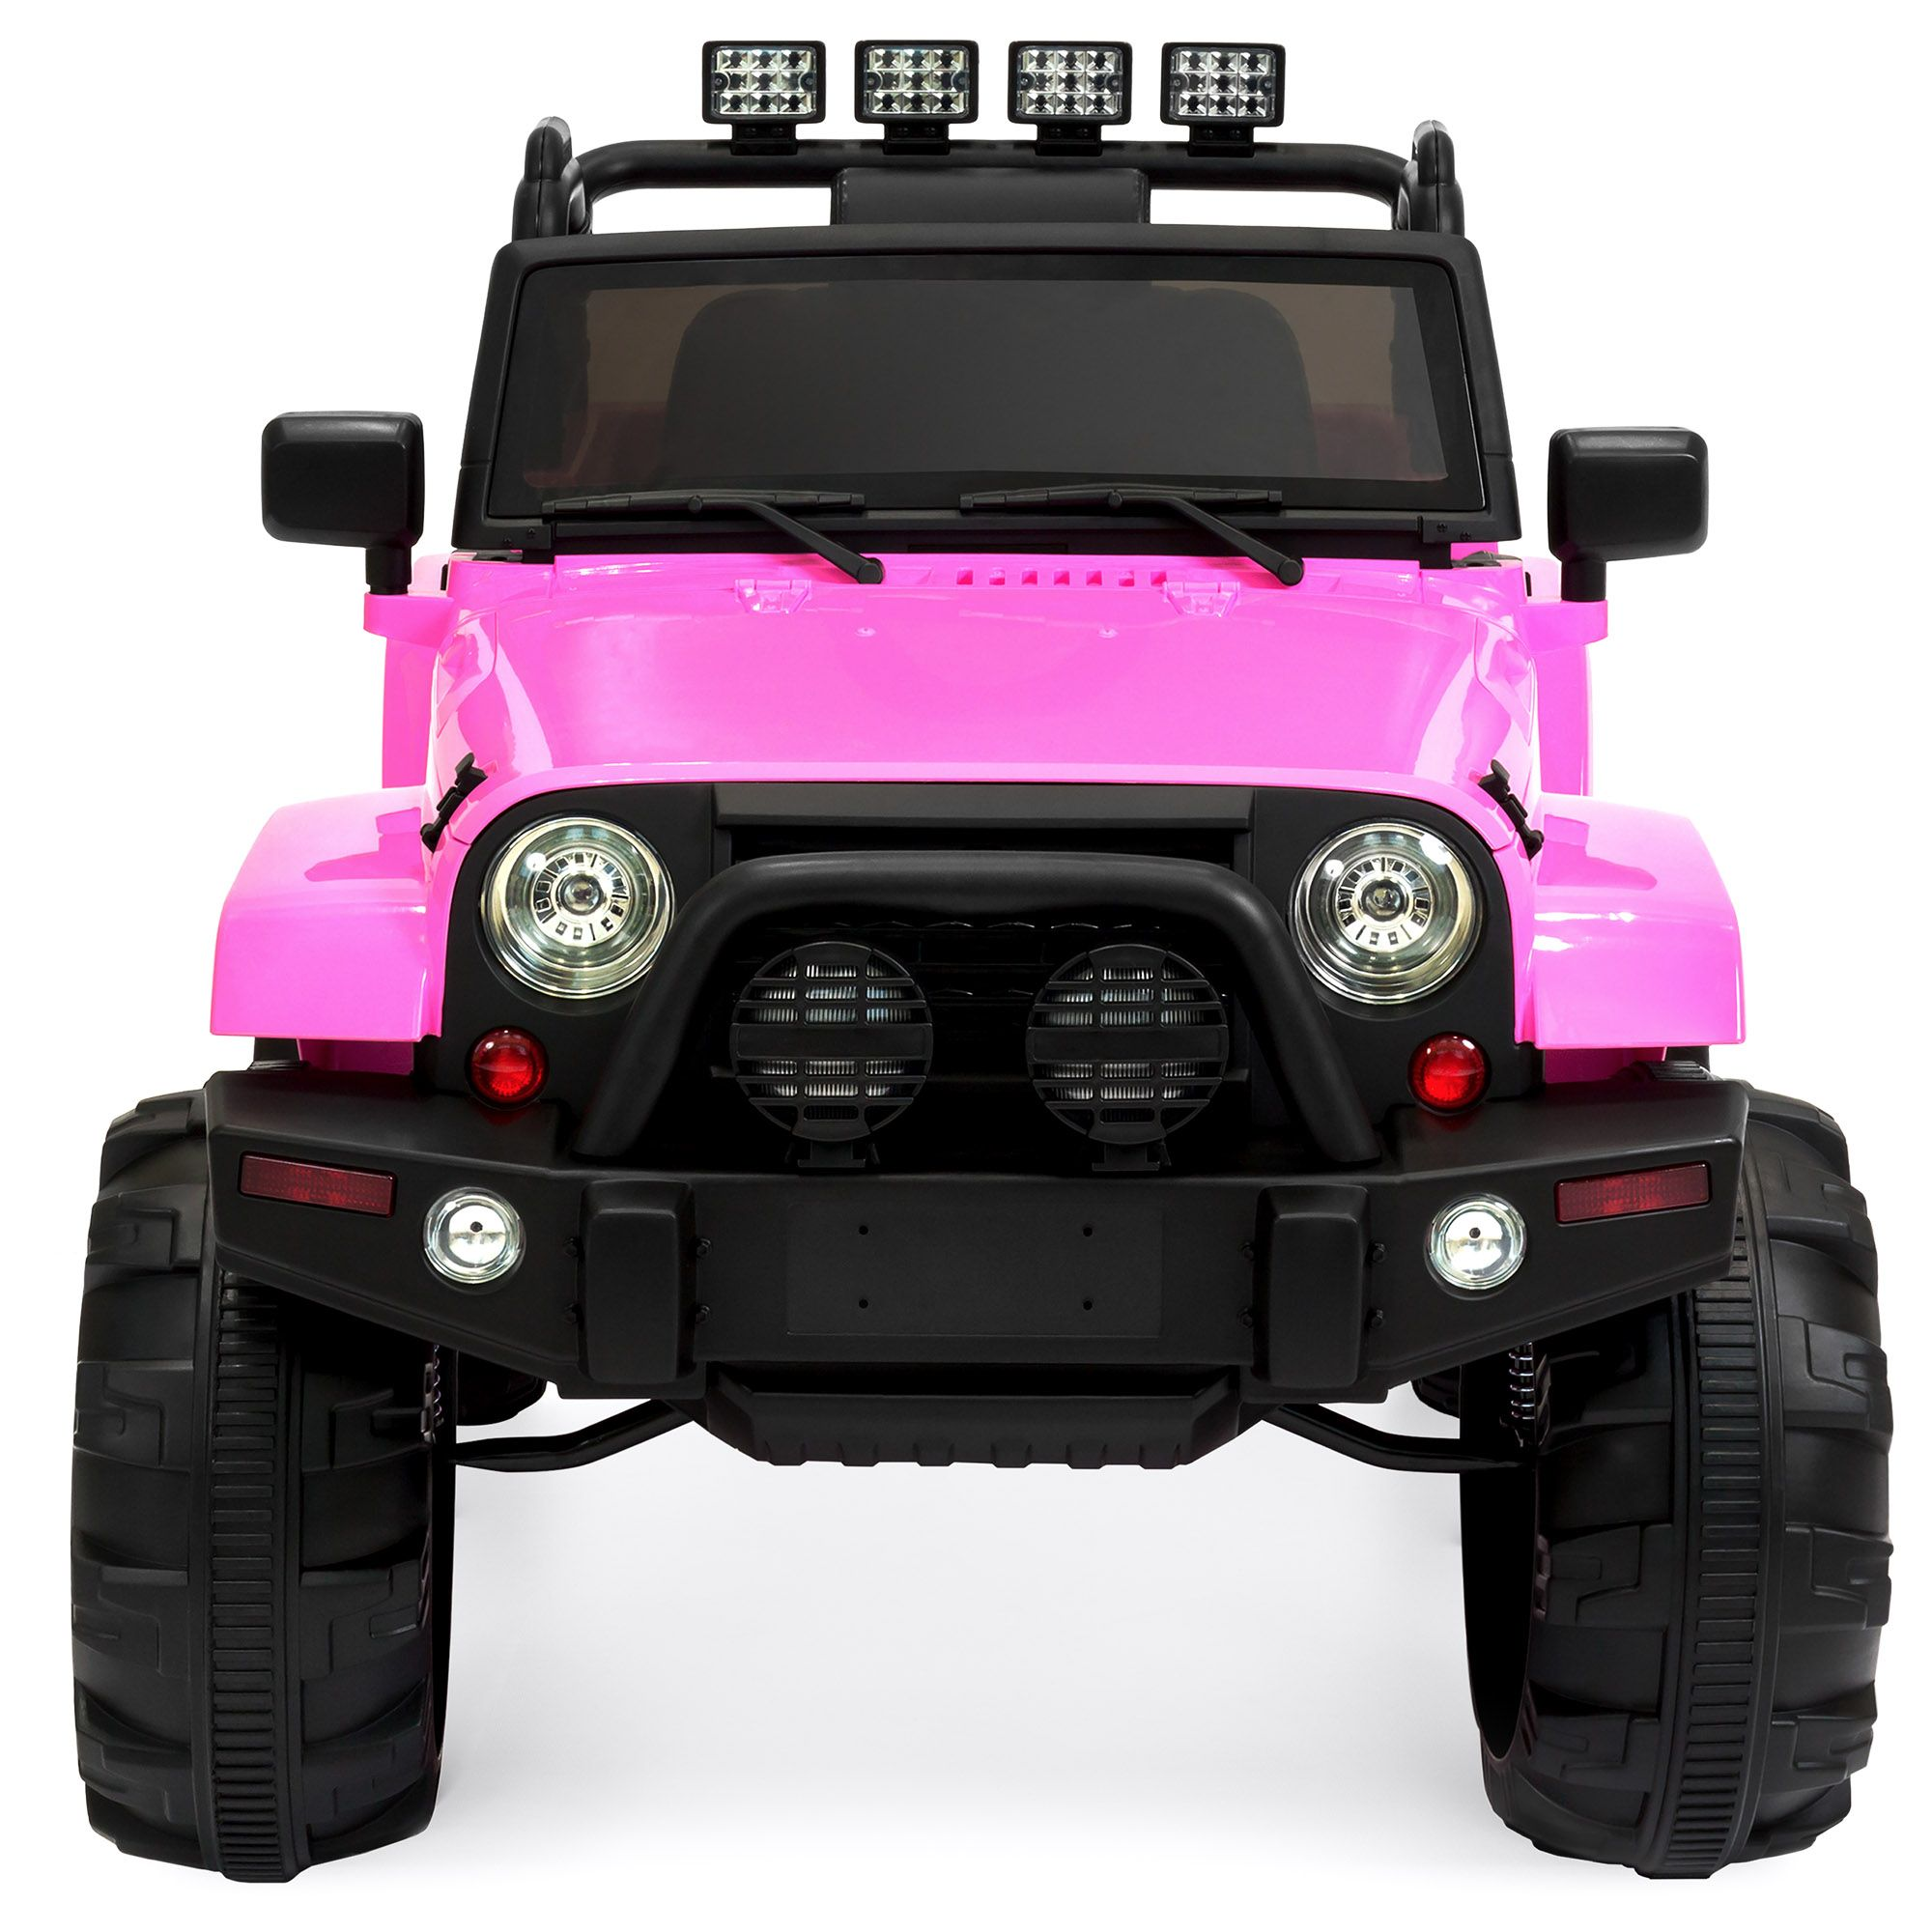 Toys in 2020 Kids ride on, Remote control cars, Car